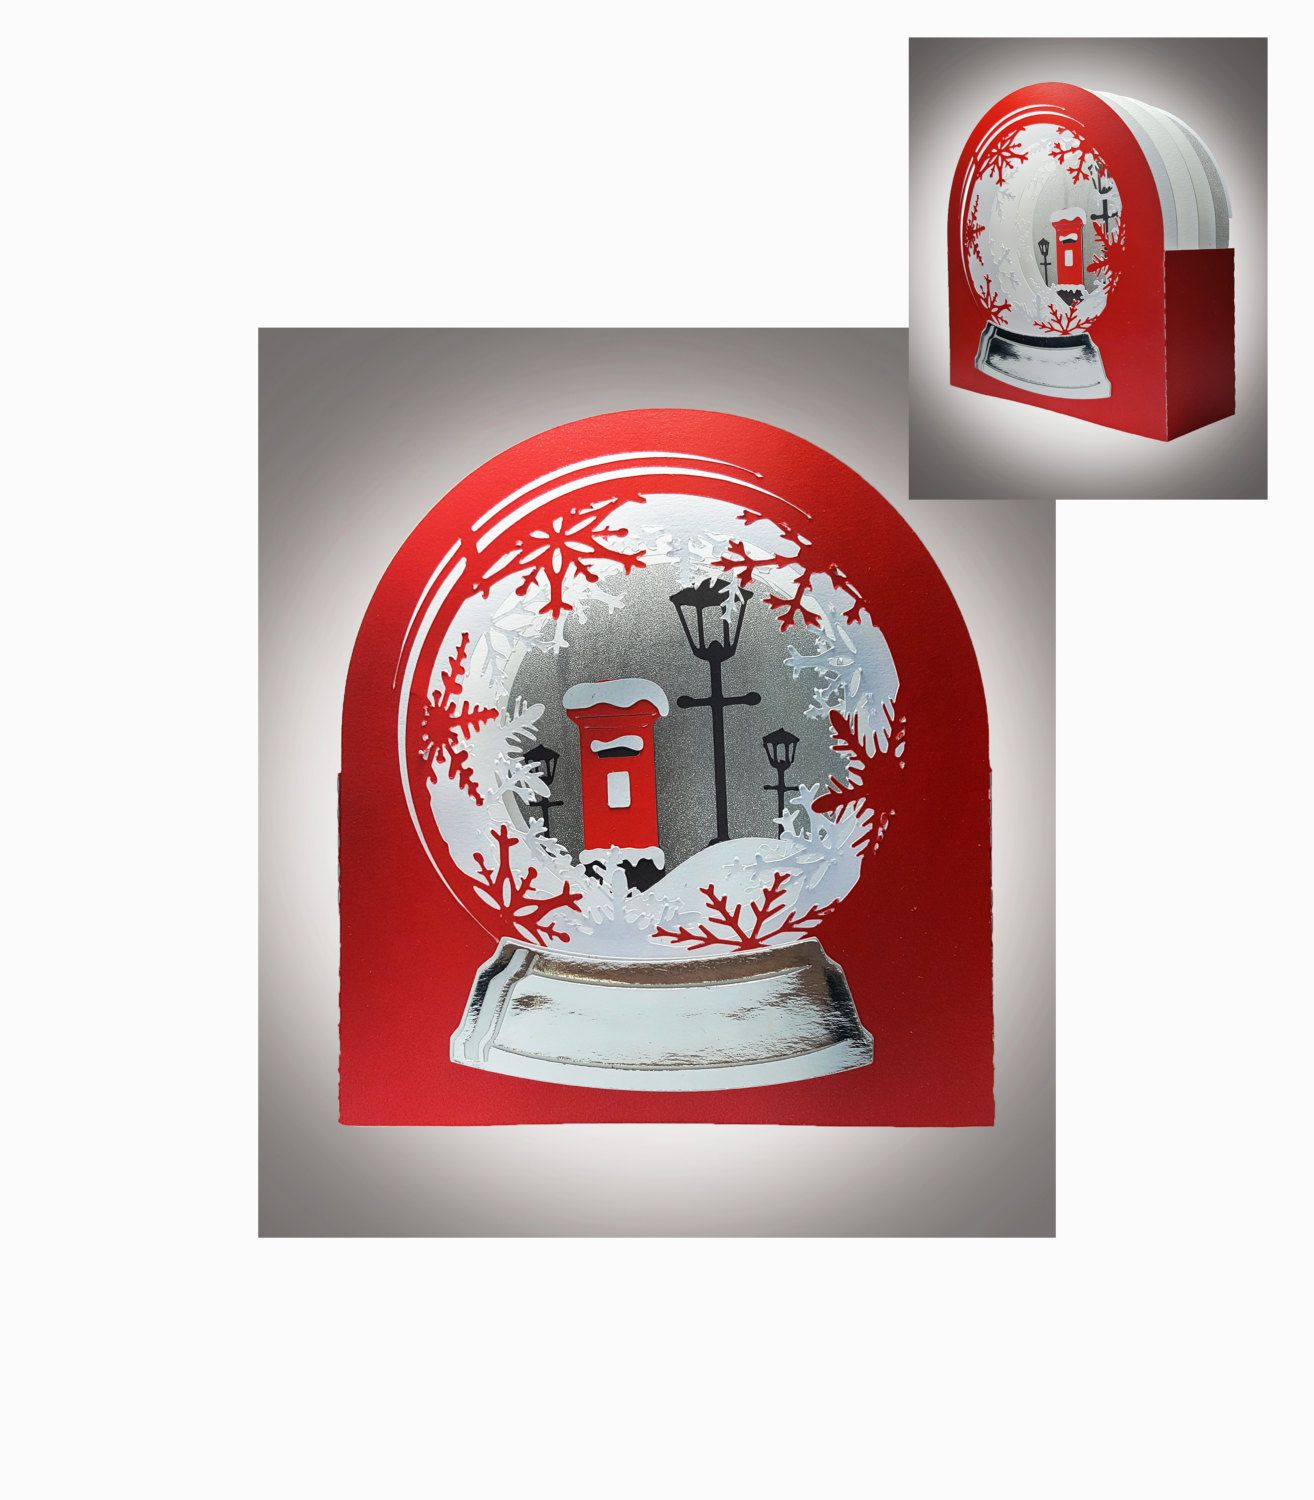 Snow globe card red letter box template letter boxes box snow globe card red letter box template by mysvghut on etsy spiritdancerdesigns Image collections